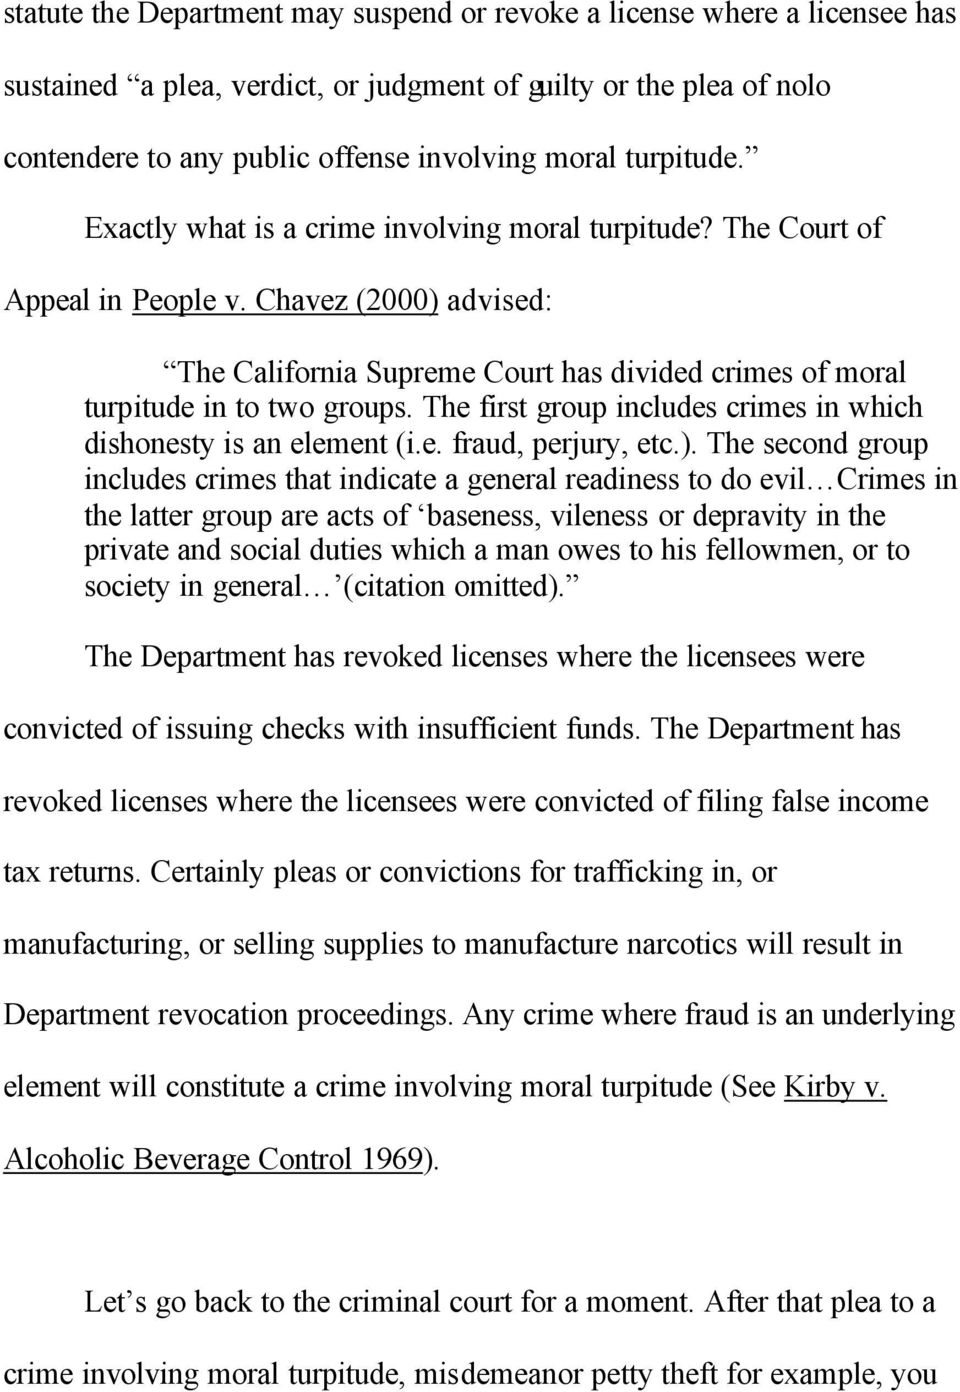 Chavez (2000) advised: The California Supreme Court has divided crimes of moral turpitude in to two groups. The first group includes crimes in which dishonesty is an element (i.e. fraud, perjury, etc.